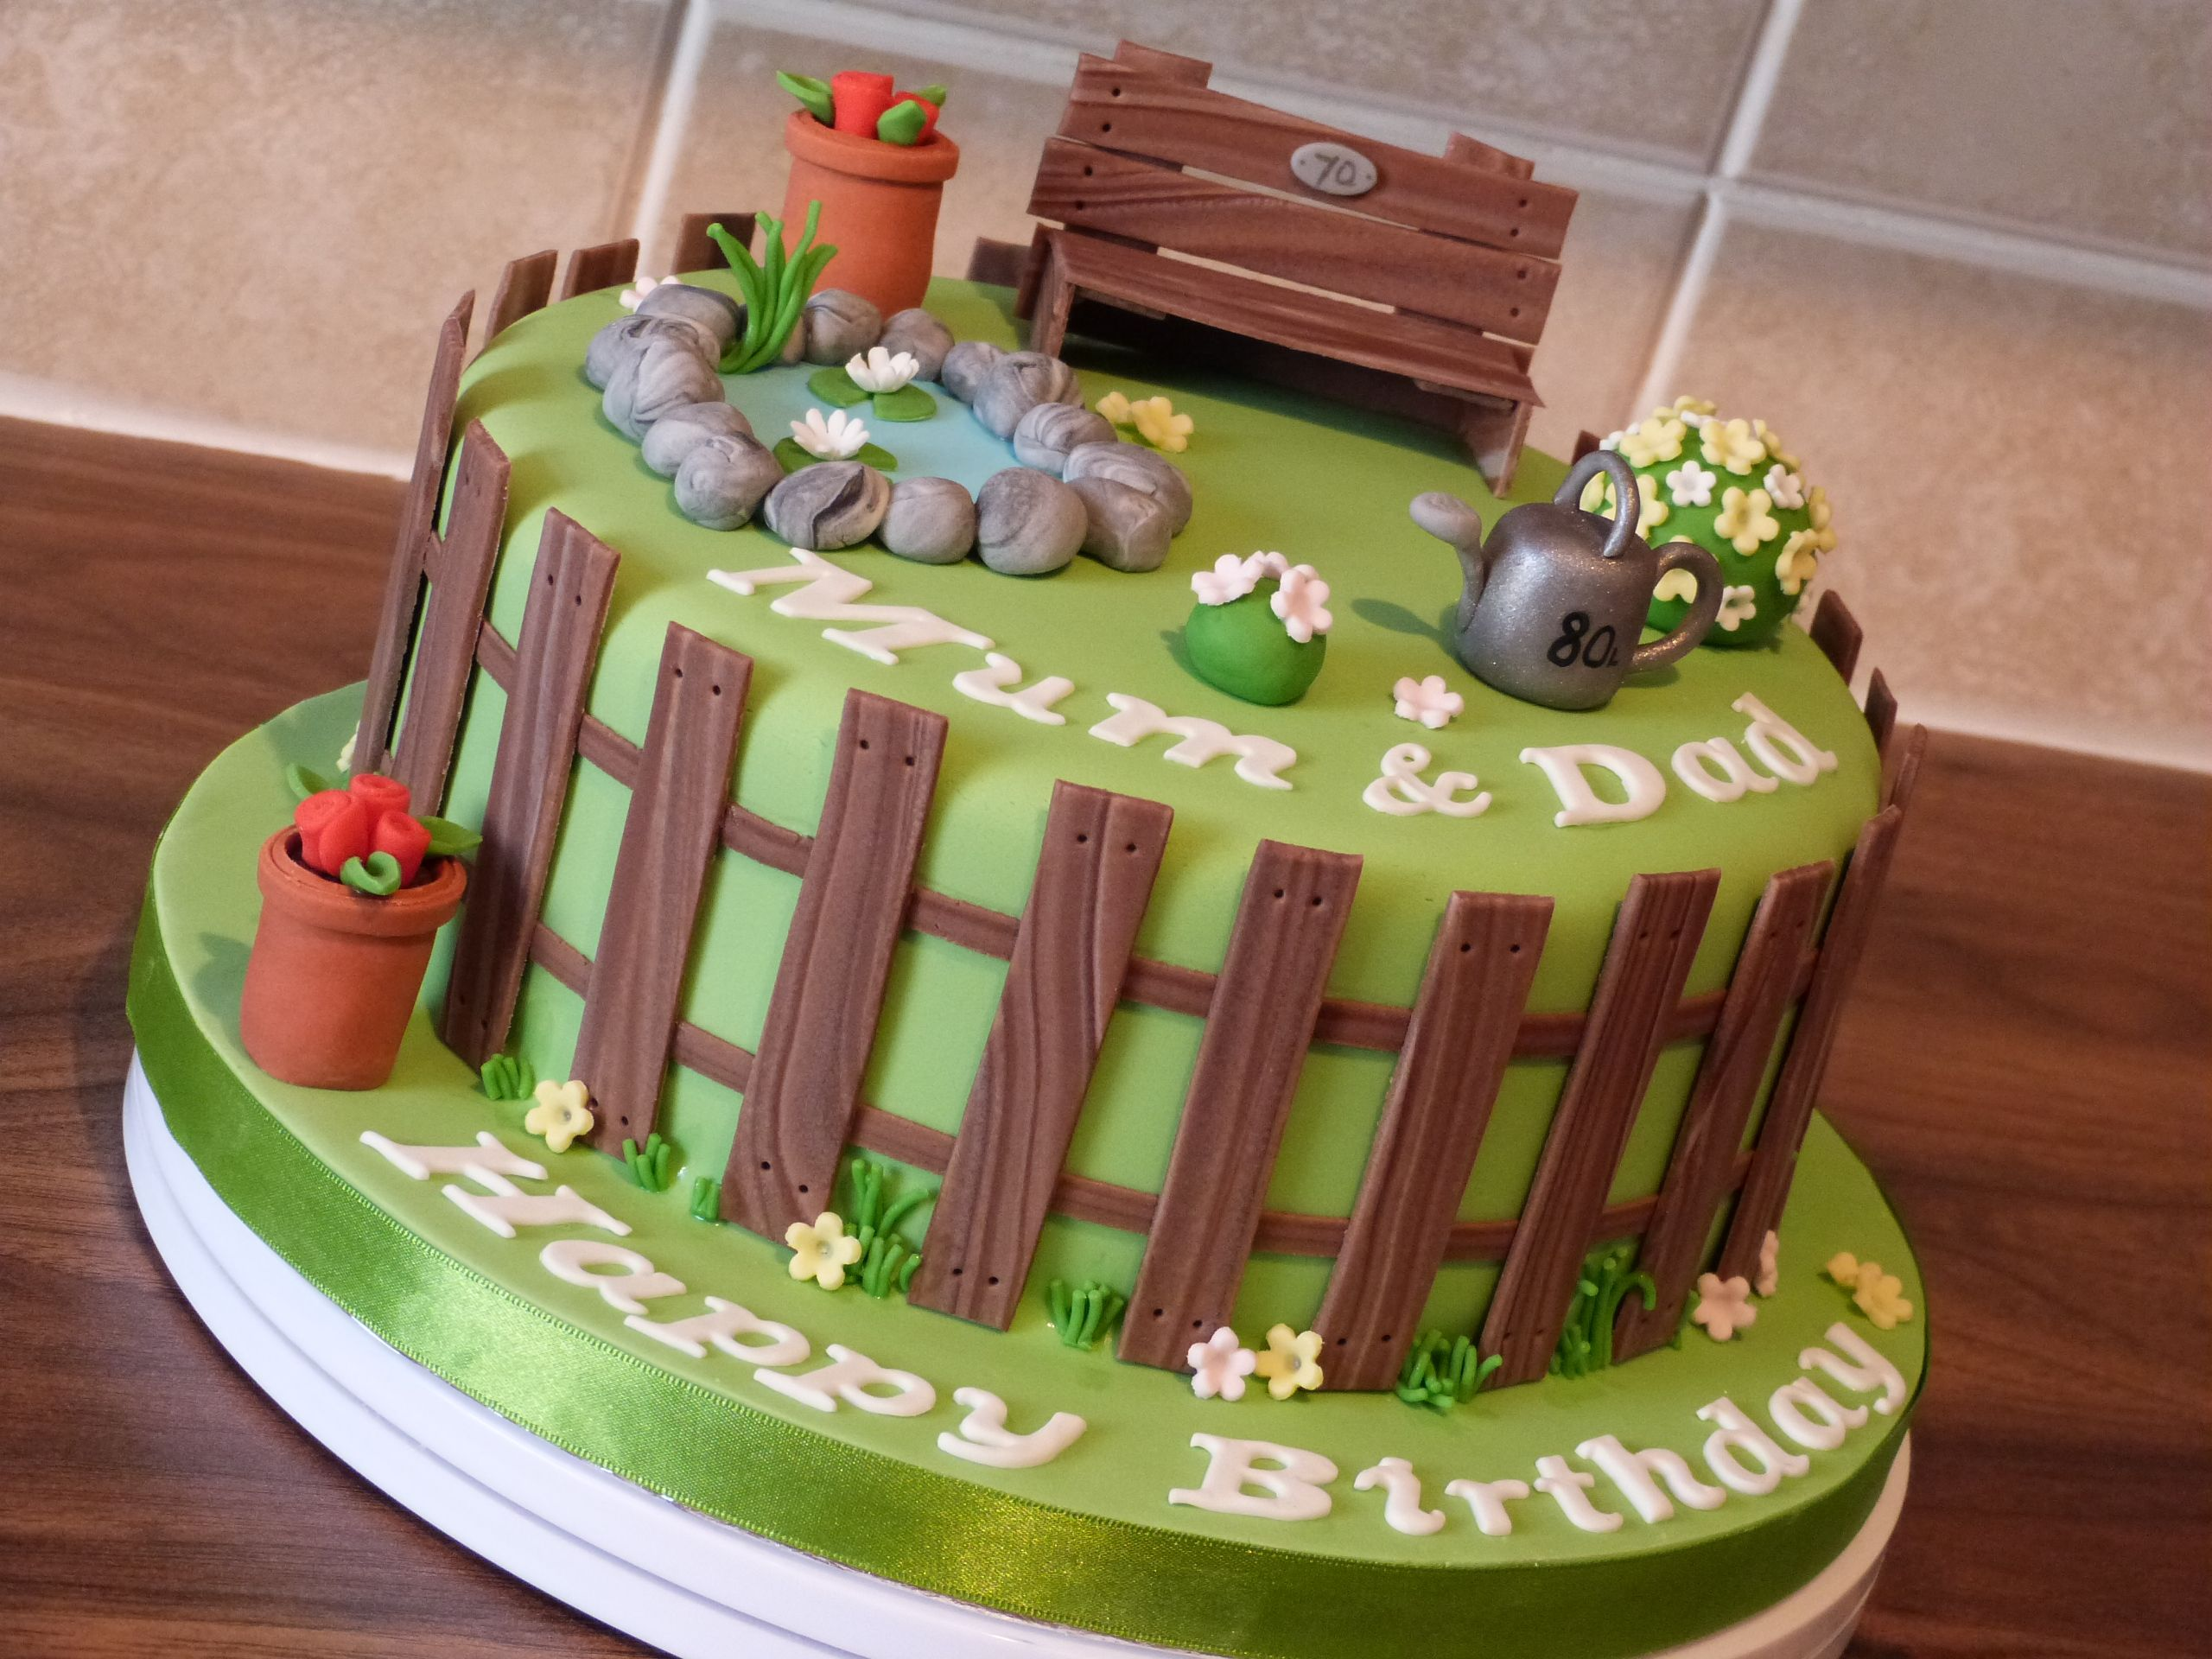 Gardening Cake With A Wooden Fence Bench An A Pond With Lillie Pads Farm Birthday Cakes Retirement Cakes Garden Birthday Cake